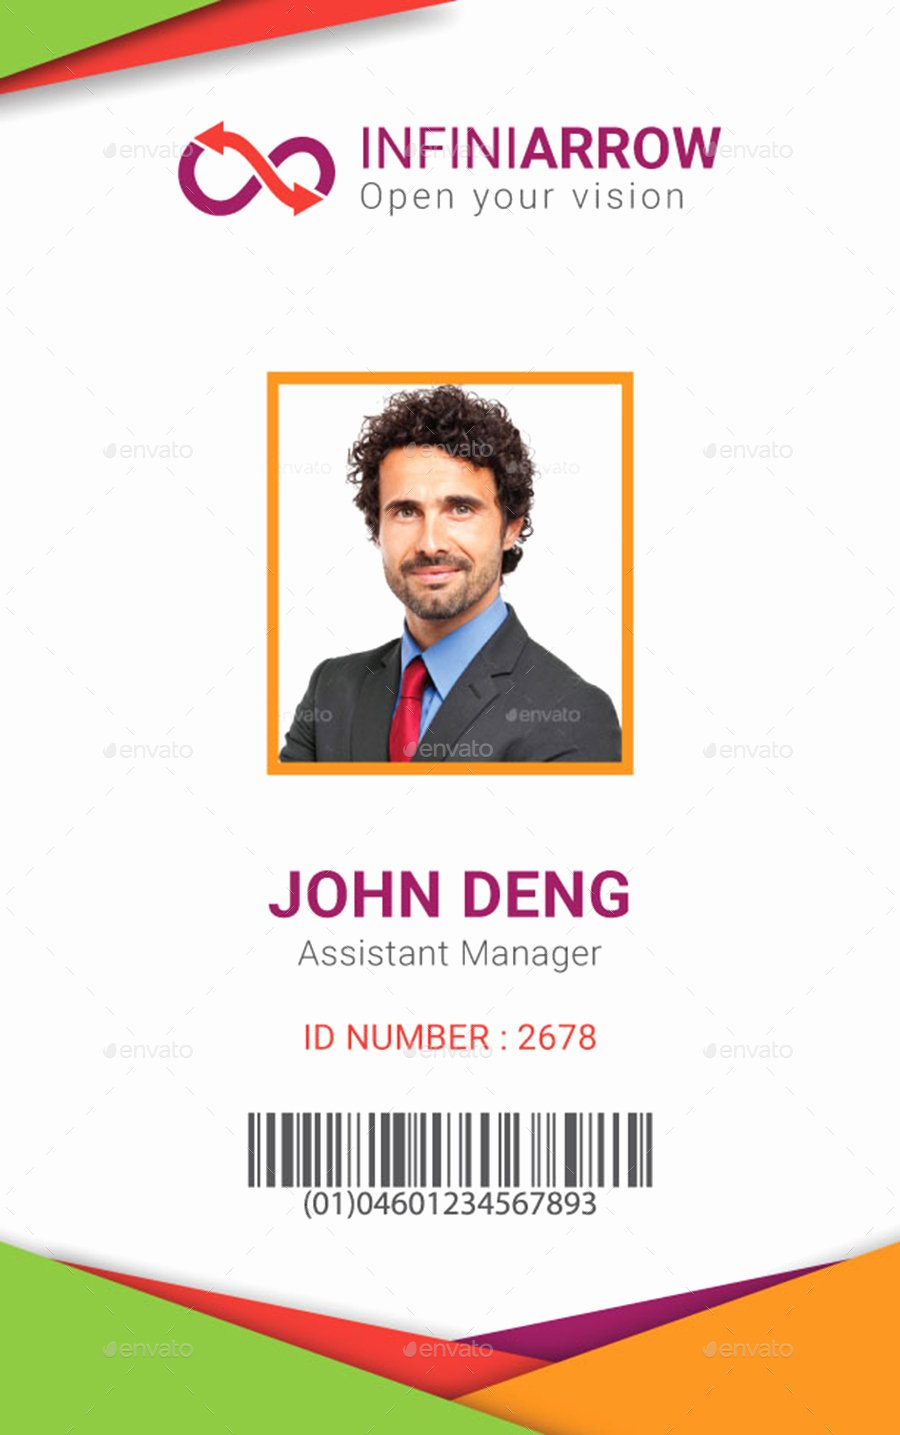 Id Card Size Template New Work Id Card Template Beautiful Template Design Ideas